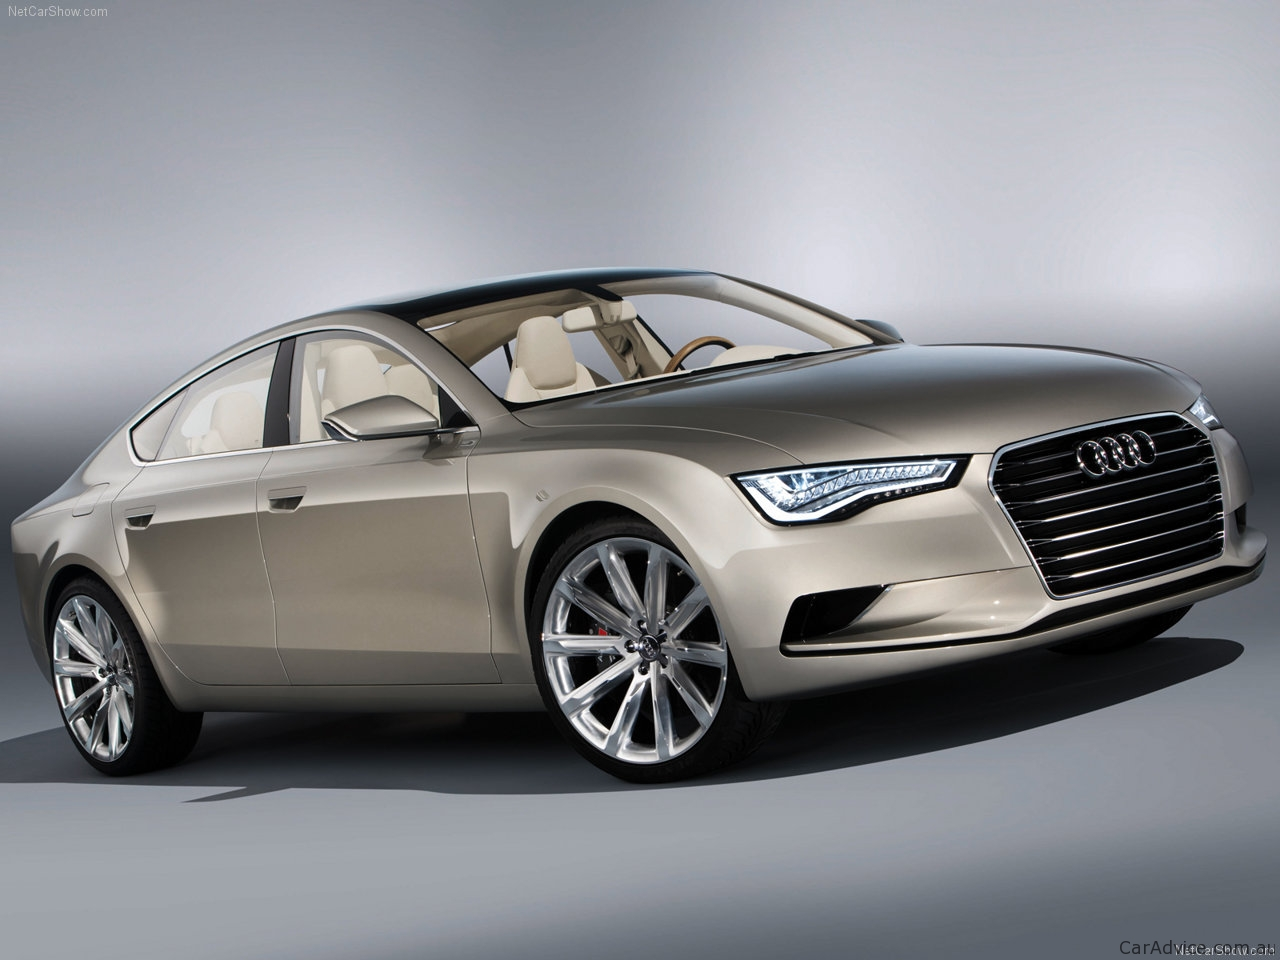 Audi A9 Prices 35365 Hi-Resolution | Best Free JPG